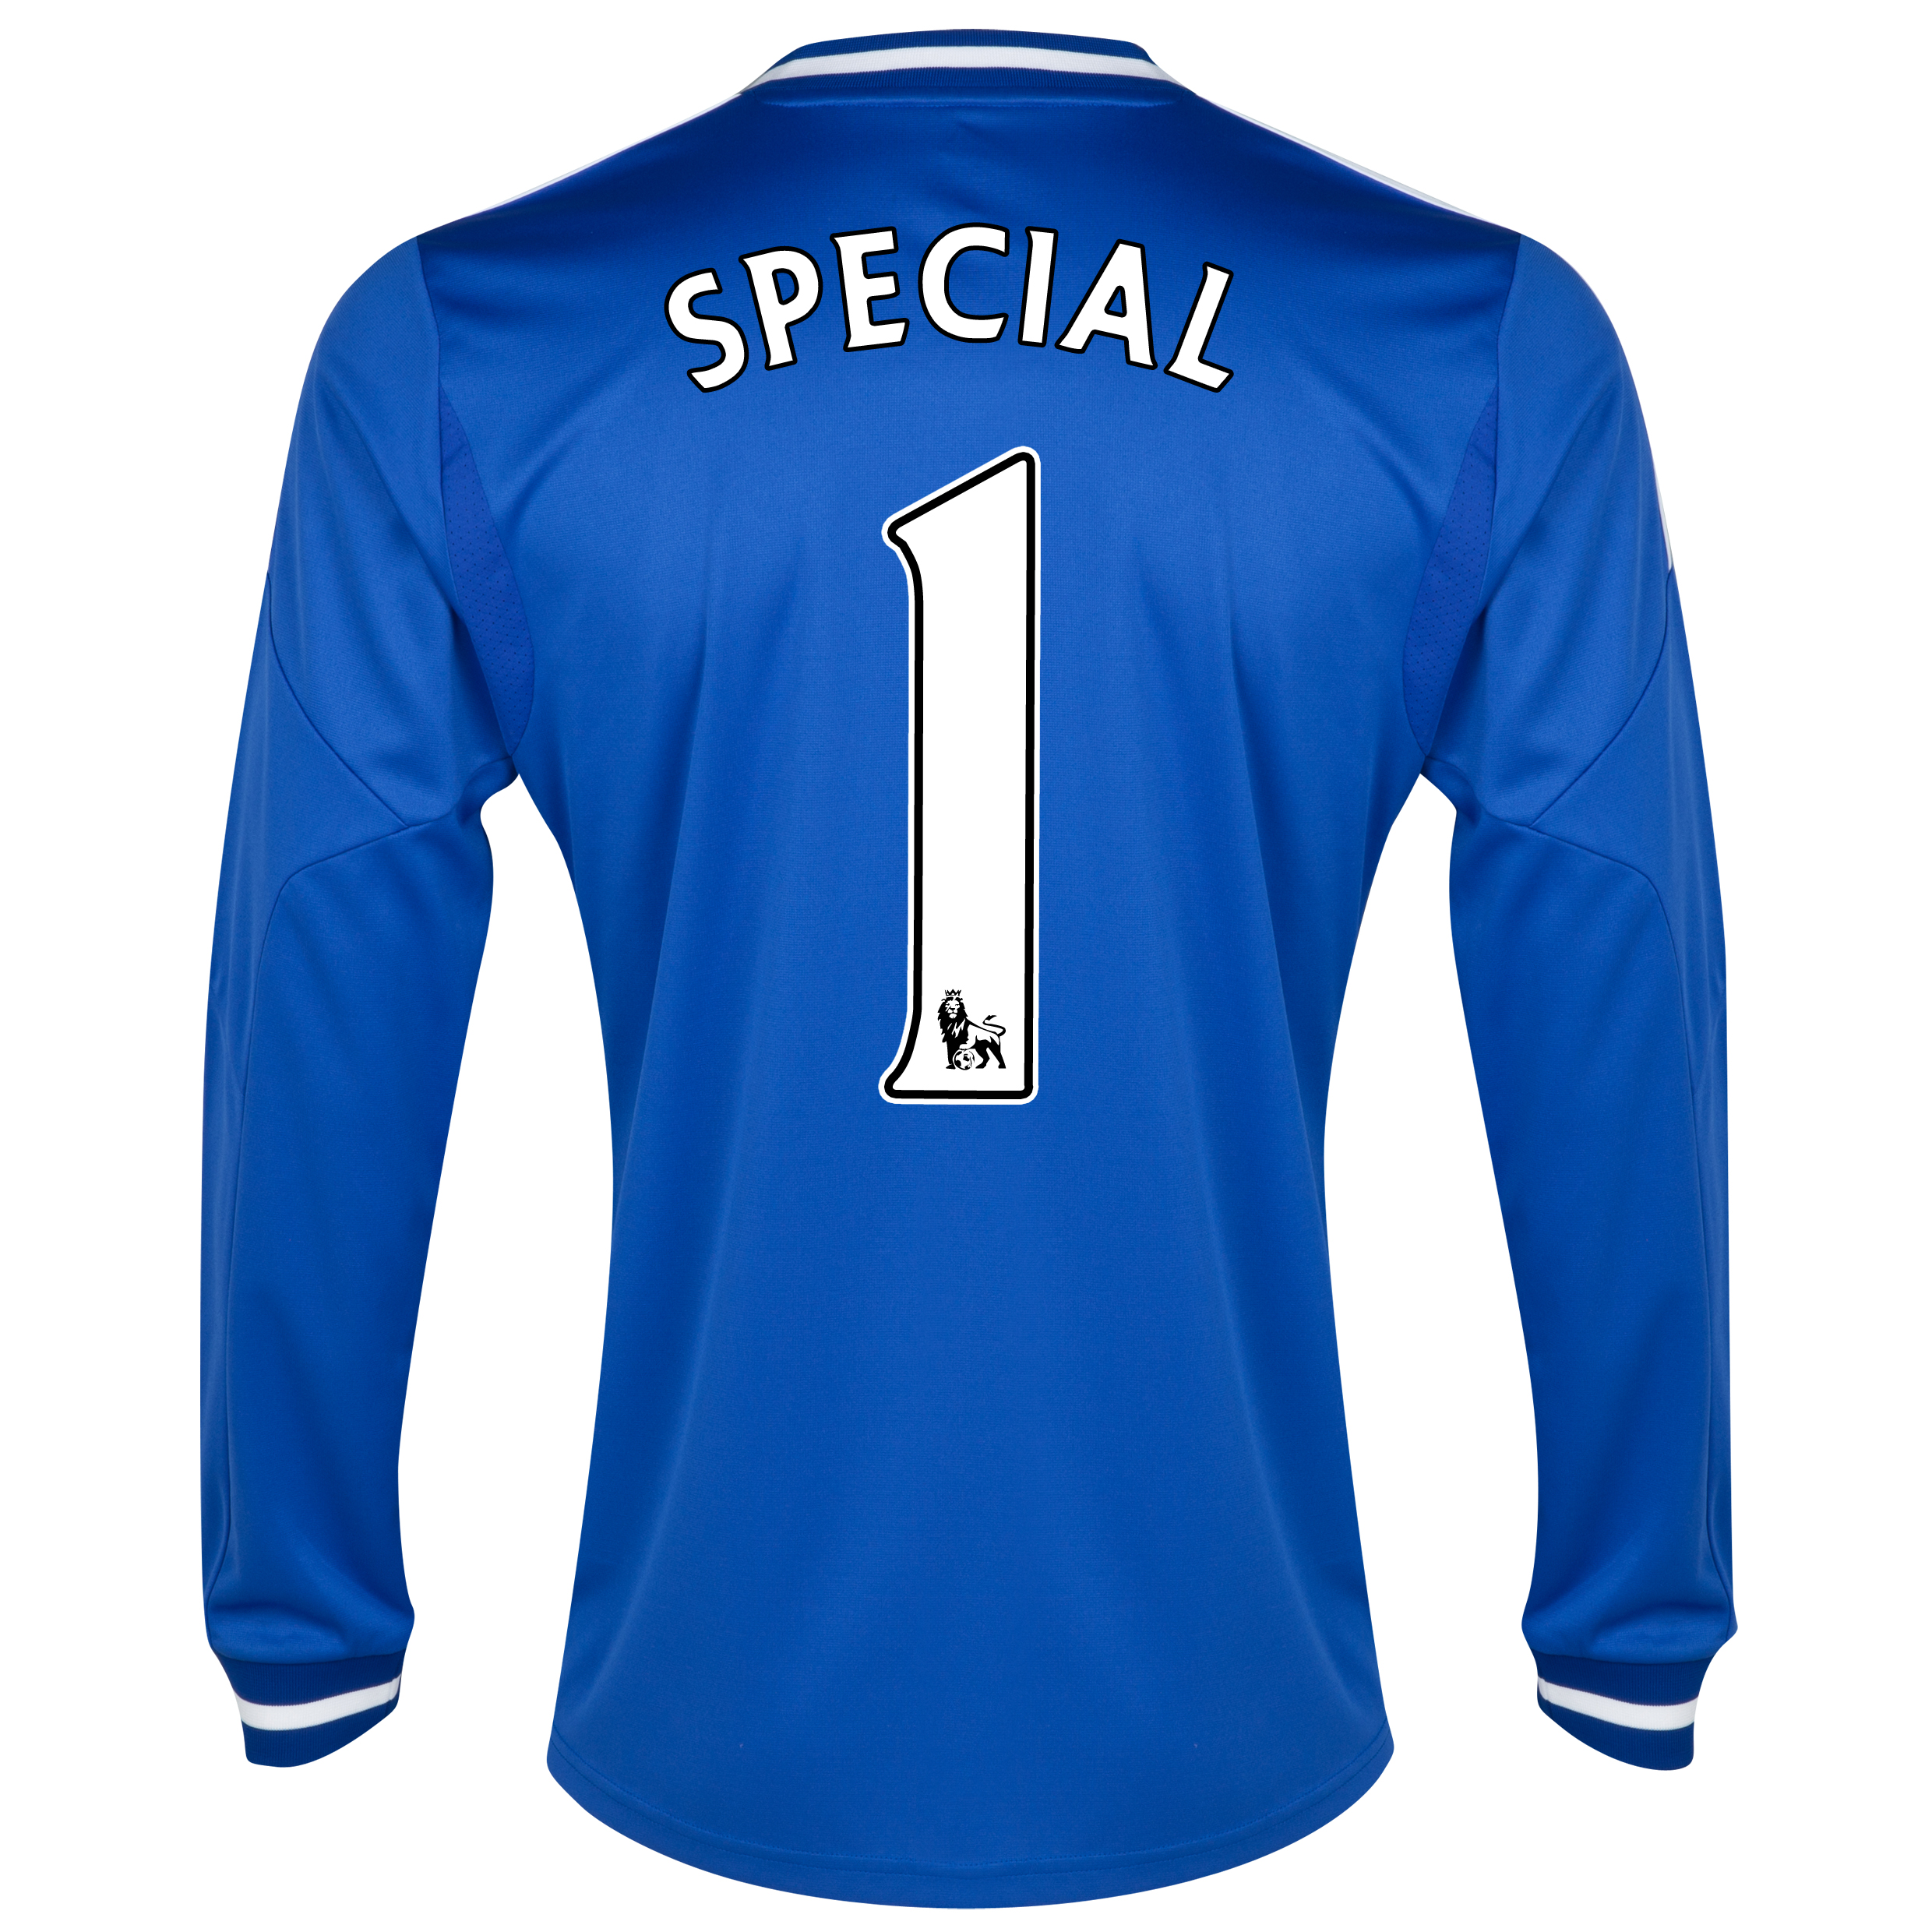 Chelsea Home Shirt 2013/14 - Long Sleeve with Special 1 printing